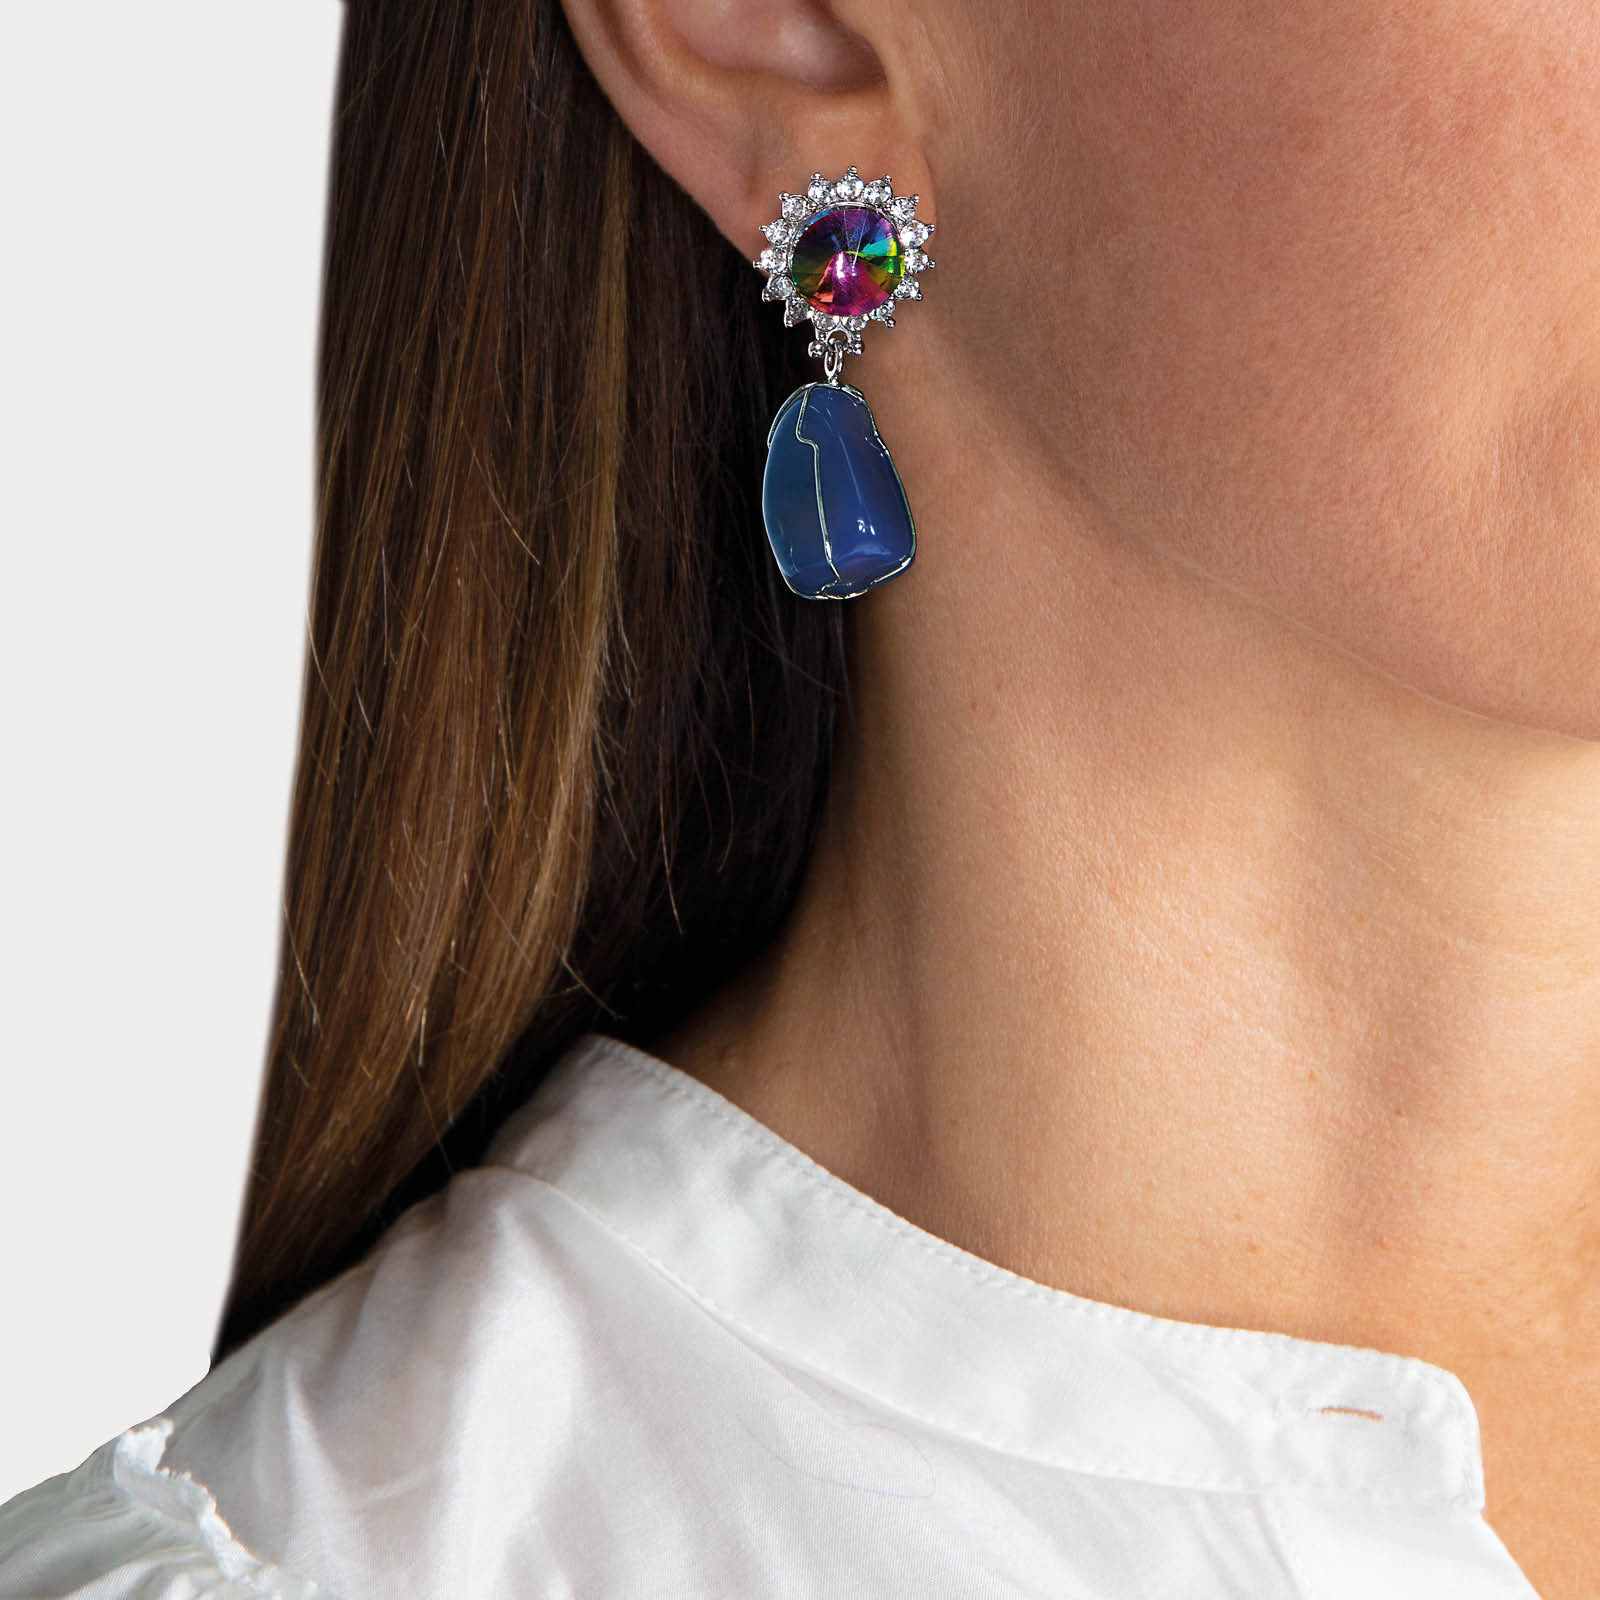 Colorful Marilyn Agate Nature Stone Earrings